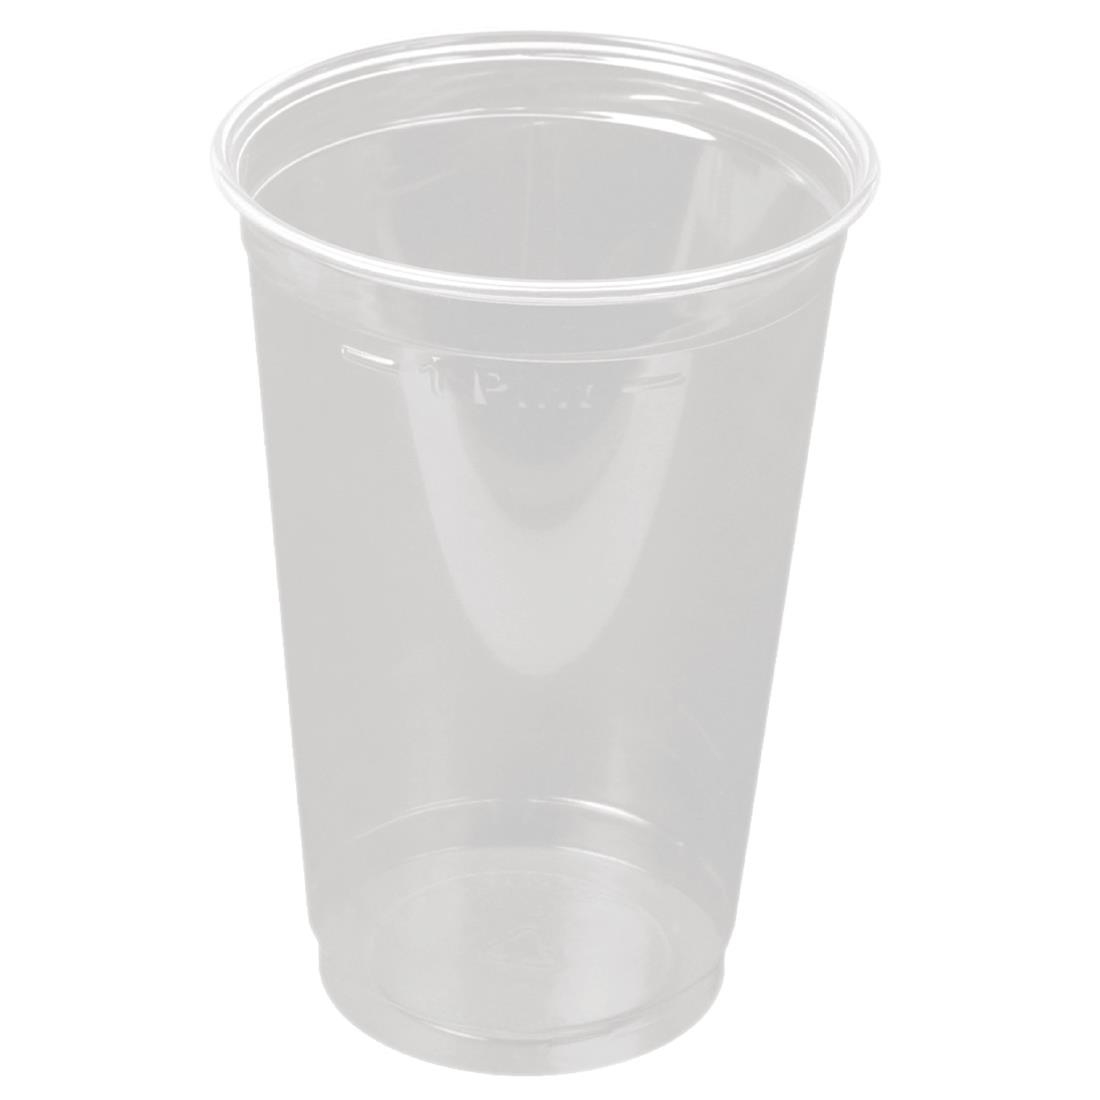 Image of Huhtamaki Disposable Pint to Line Tumbler (Pack of 500) Pack of 500